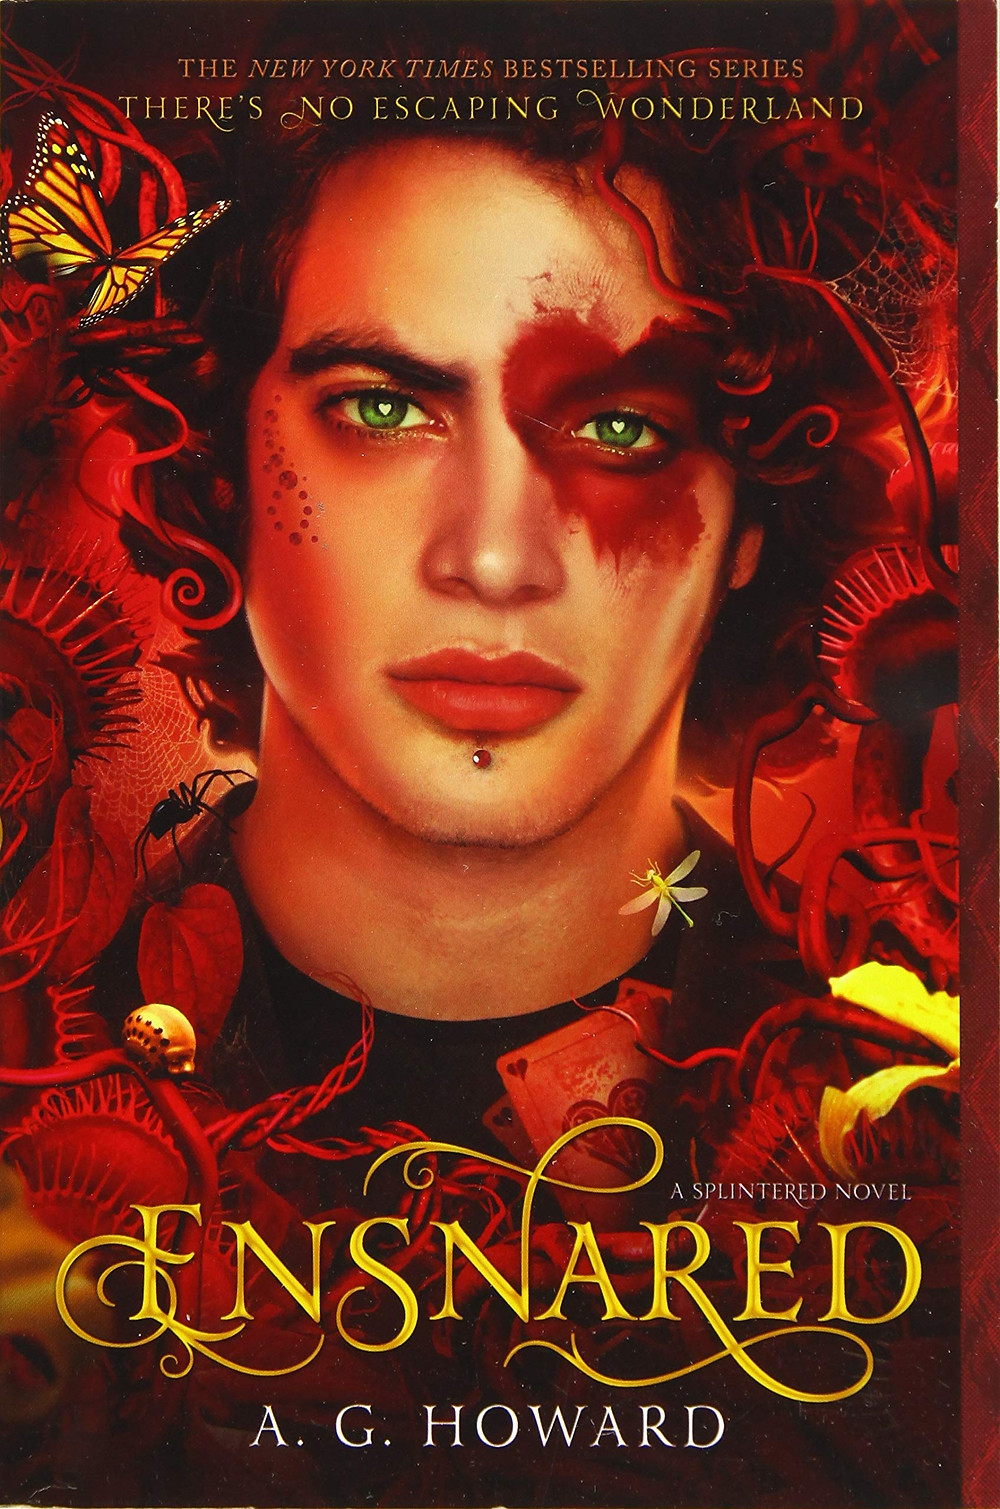 Ensnared by A. G. Howard | Book Review